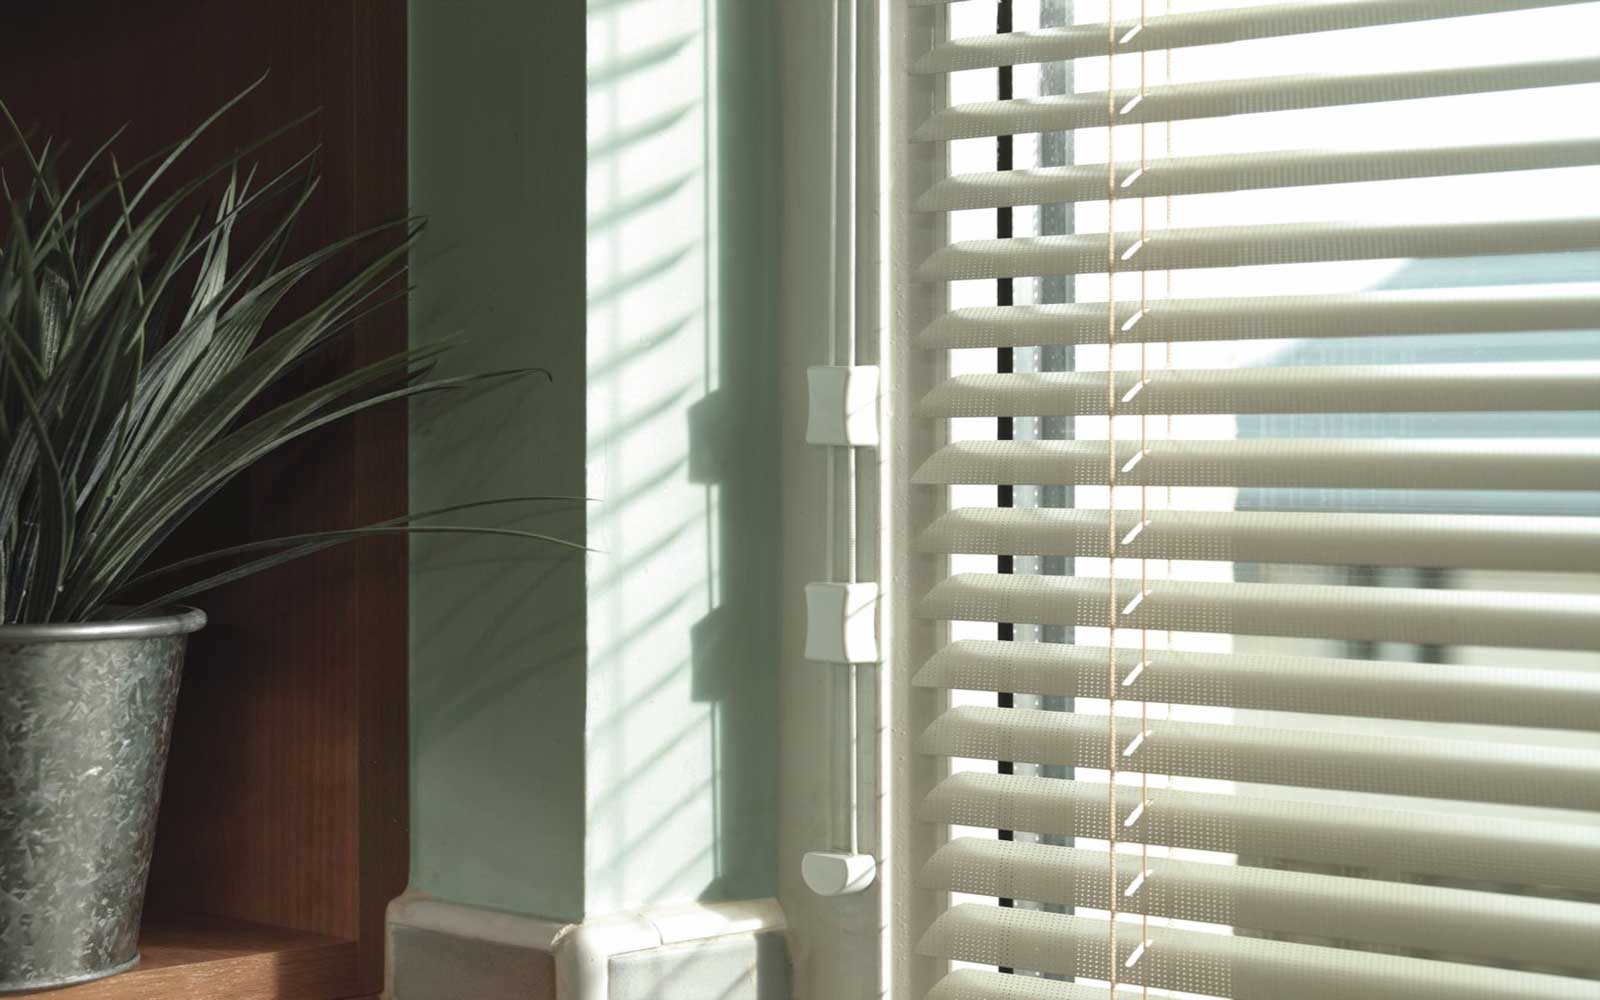 intu aluminium venetians in a window